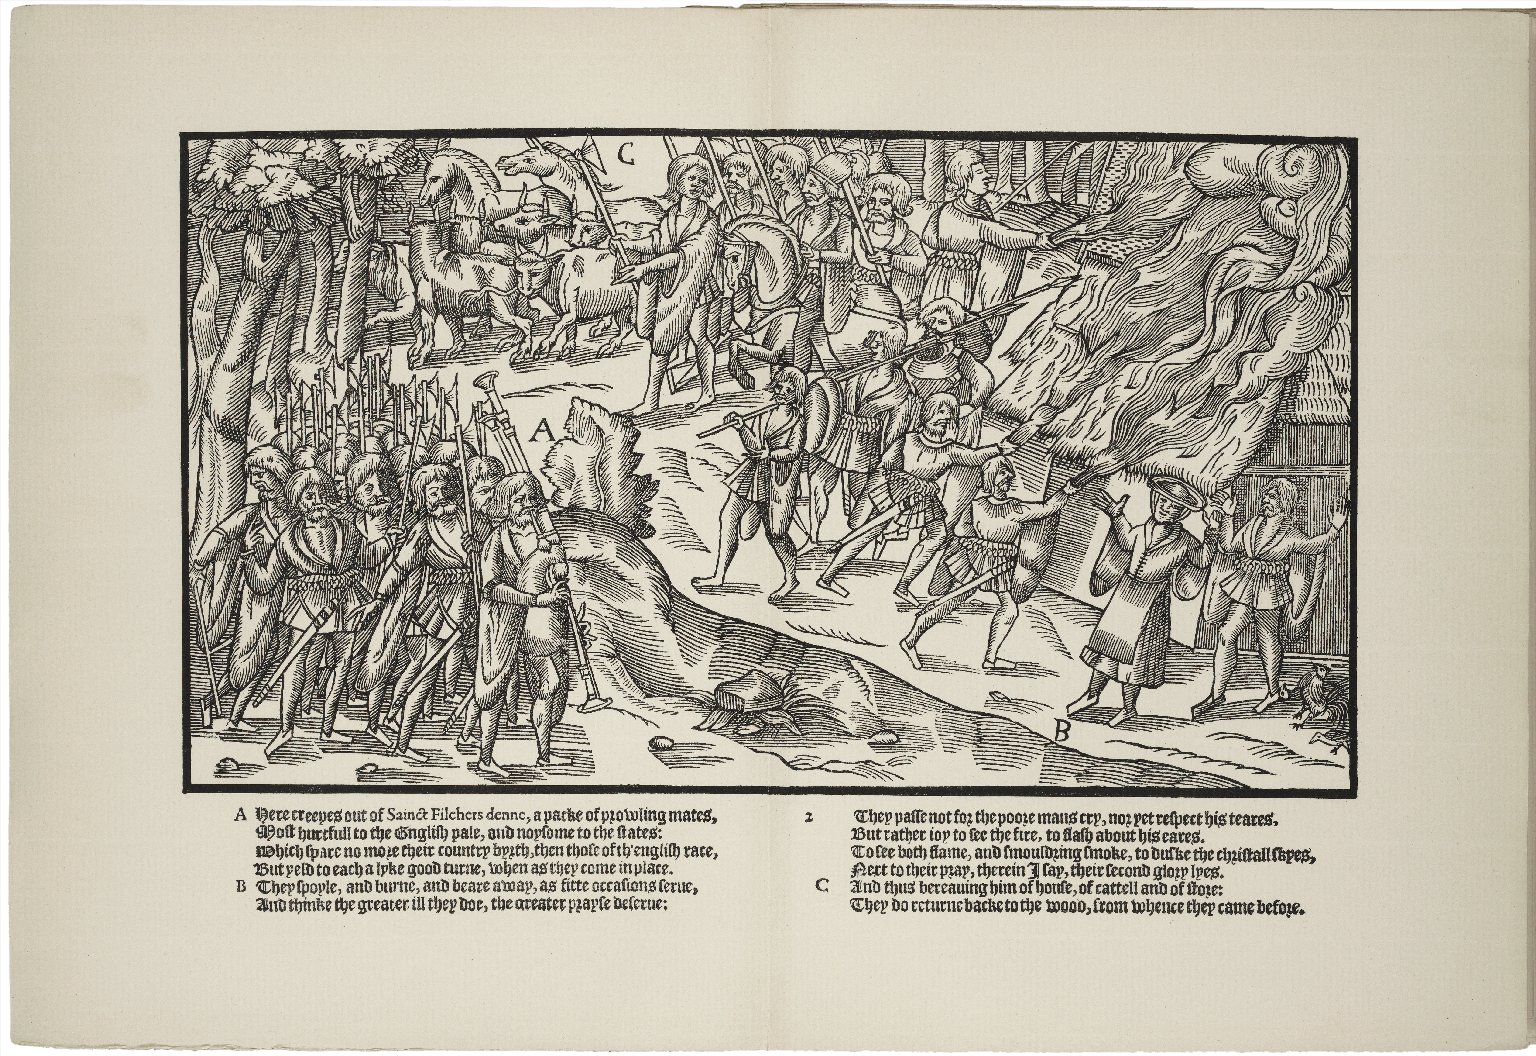 The image of Irelande : with a discouerie of woodkarne / by John Derricke, 1581 ; with the notes of Sir Walter Scott, bart. ; edited, with introduction by John Small.